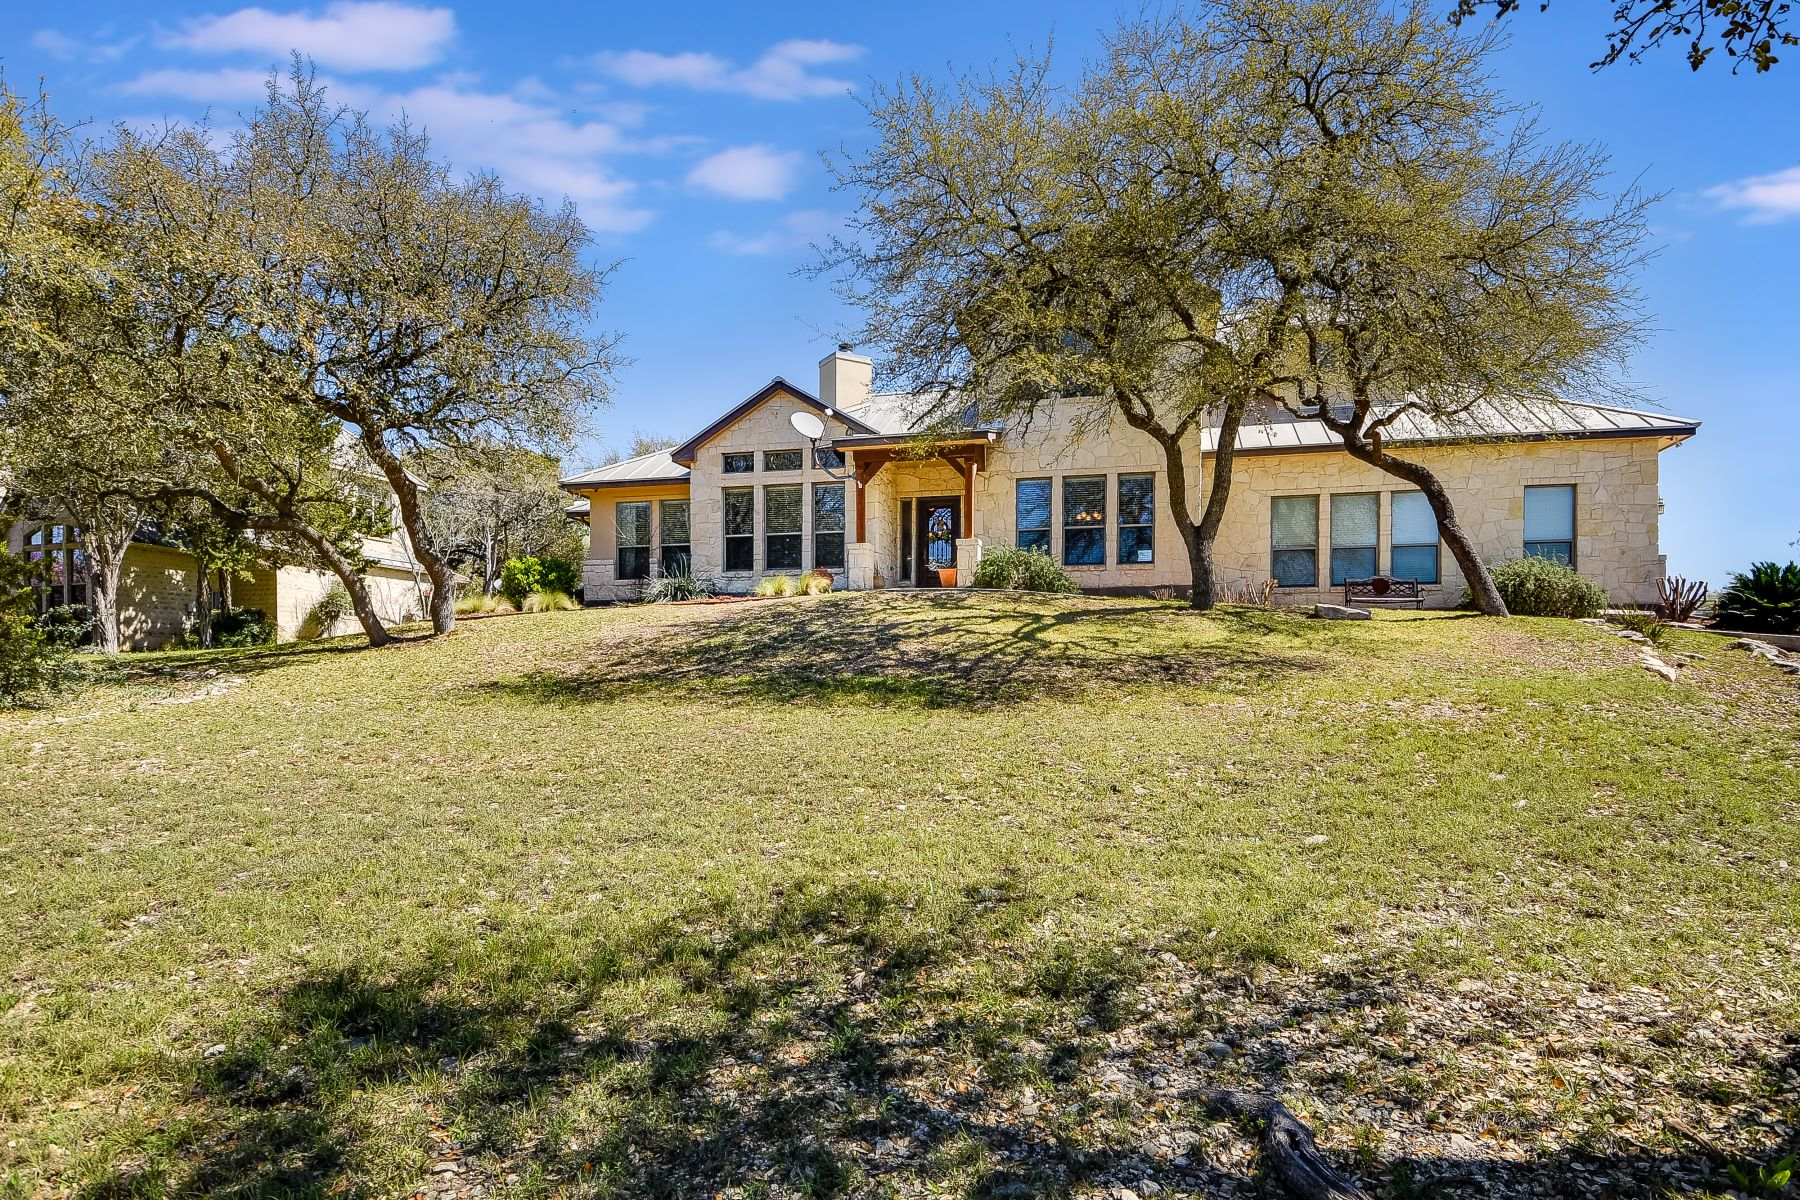 Single Family Home for Sale at Texas Hill Country Home Shepherd's Crook Helotes, Texas 78023 United States